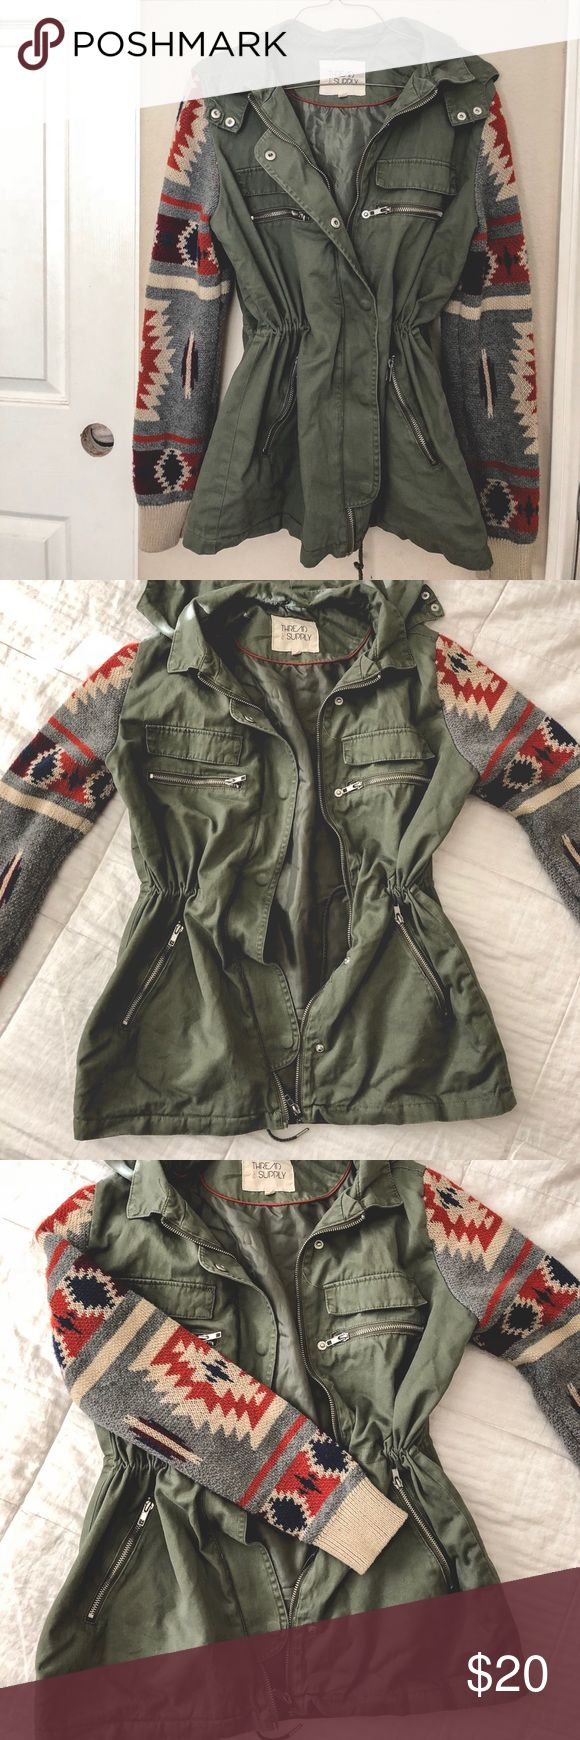 Khaki green drawstring parka Khaki green drawstring parka with knit sleeves. Thick knit to keep you warm. Drawstrings to cinch the waist. Non removable hood. Perfect condition. Fits true to size. thread & supply Jackets & Coats Utility Jackets